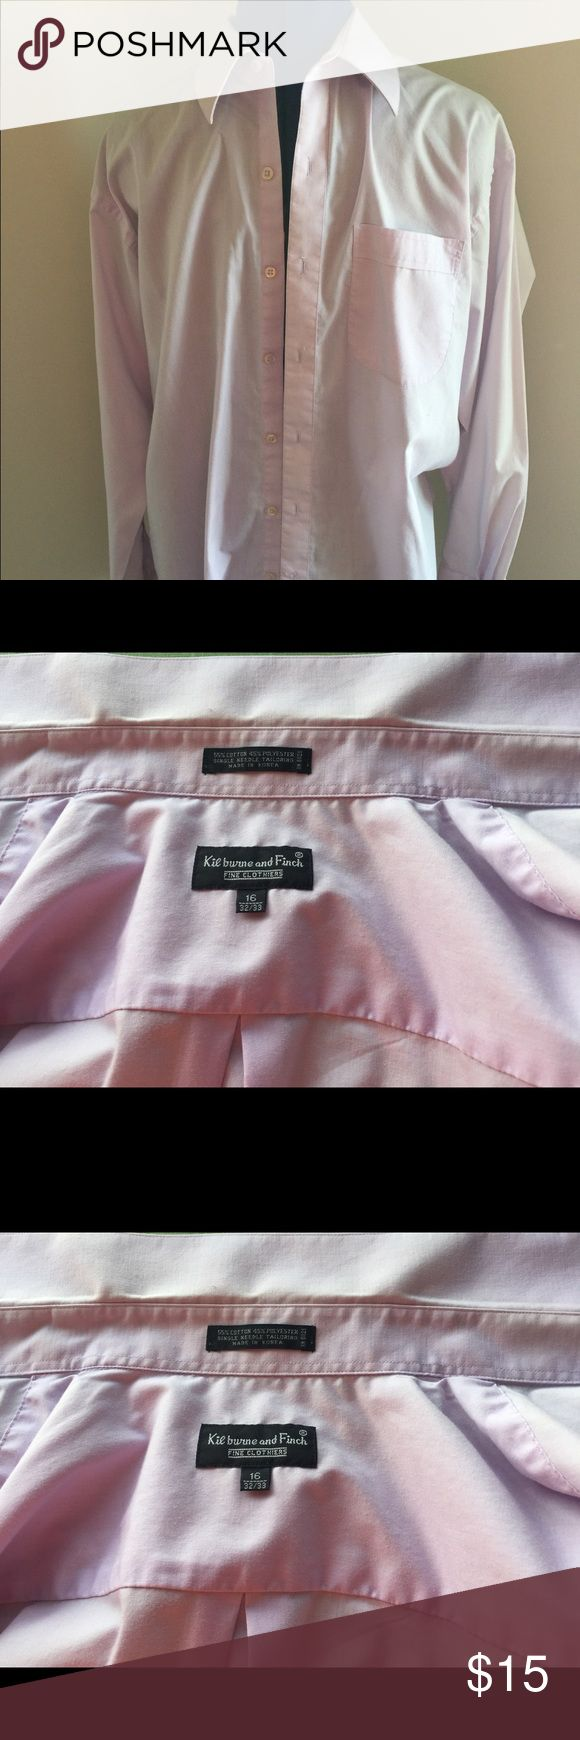 Purple Dress Shirt Kilburne & Finch Fine Clothiers Condition: Preowned Flaws: Light discoloration in collar (see photo) Unique Details: Beautiful color Item Size: 16 32/33 Brand: Killburne & Fince Color: Lilac SMOKE FREE HOME! kilburne and finch Shirts Dress Shirts